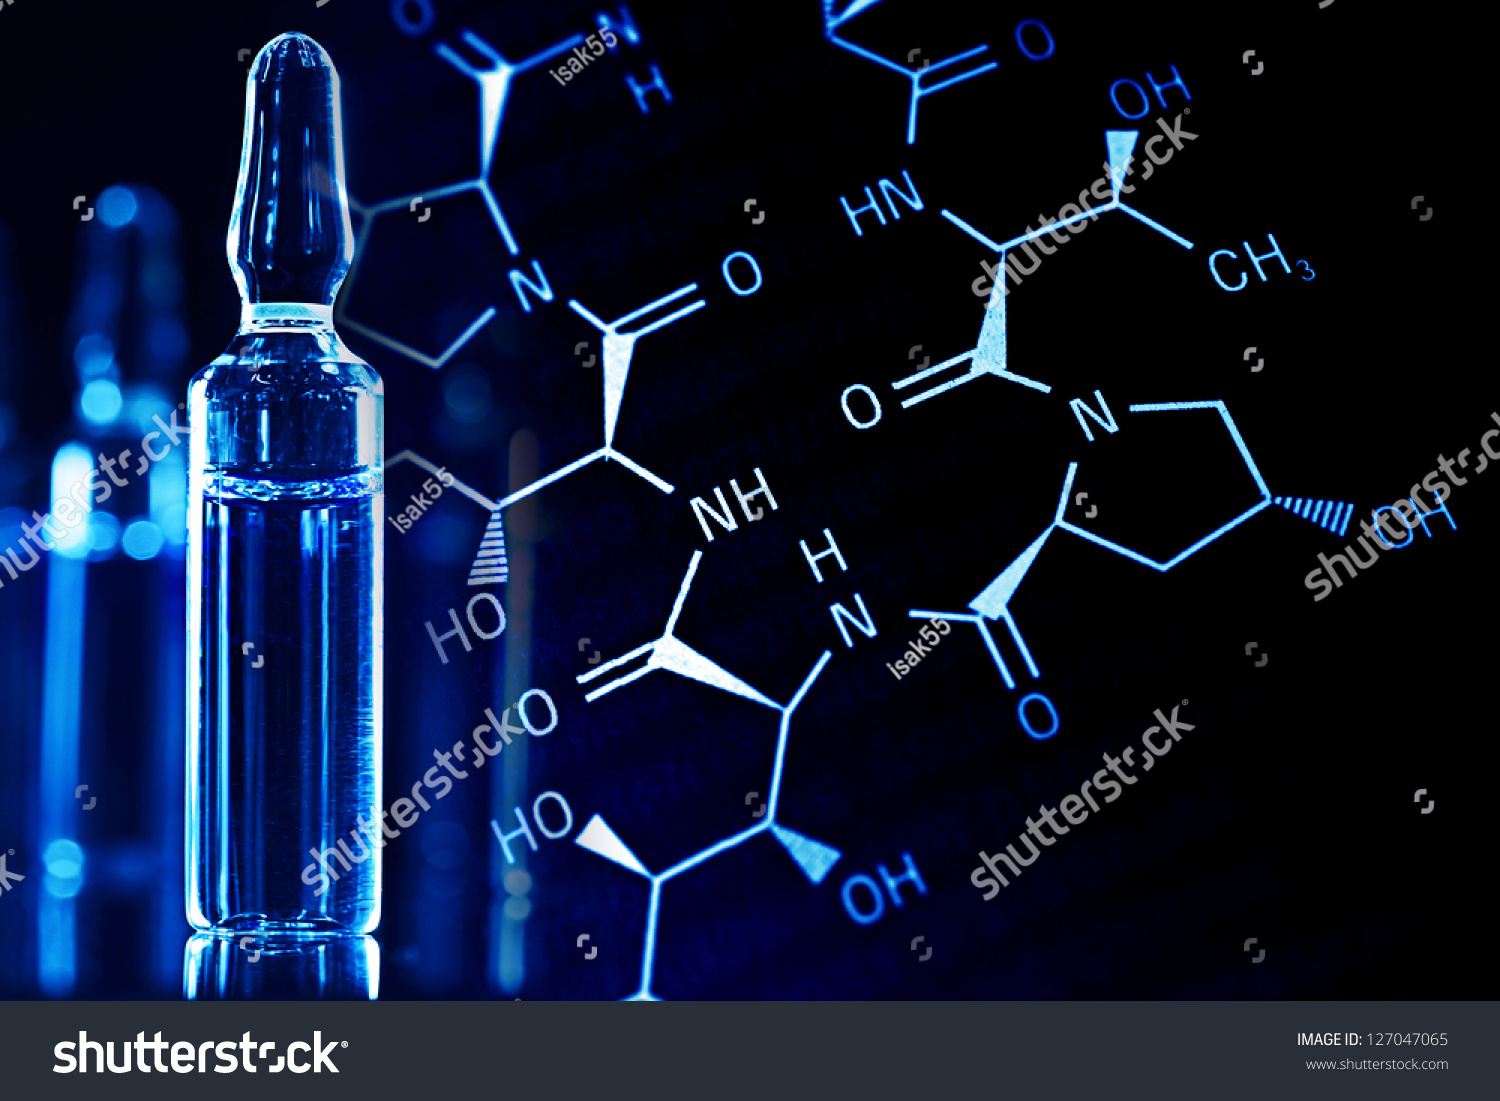 www sphinxsai com thesis of chemistry Delivery service: how implantable drug delivery devices are fudiss_derivate_000000009580/duangrat_thesis .